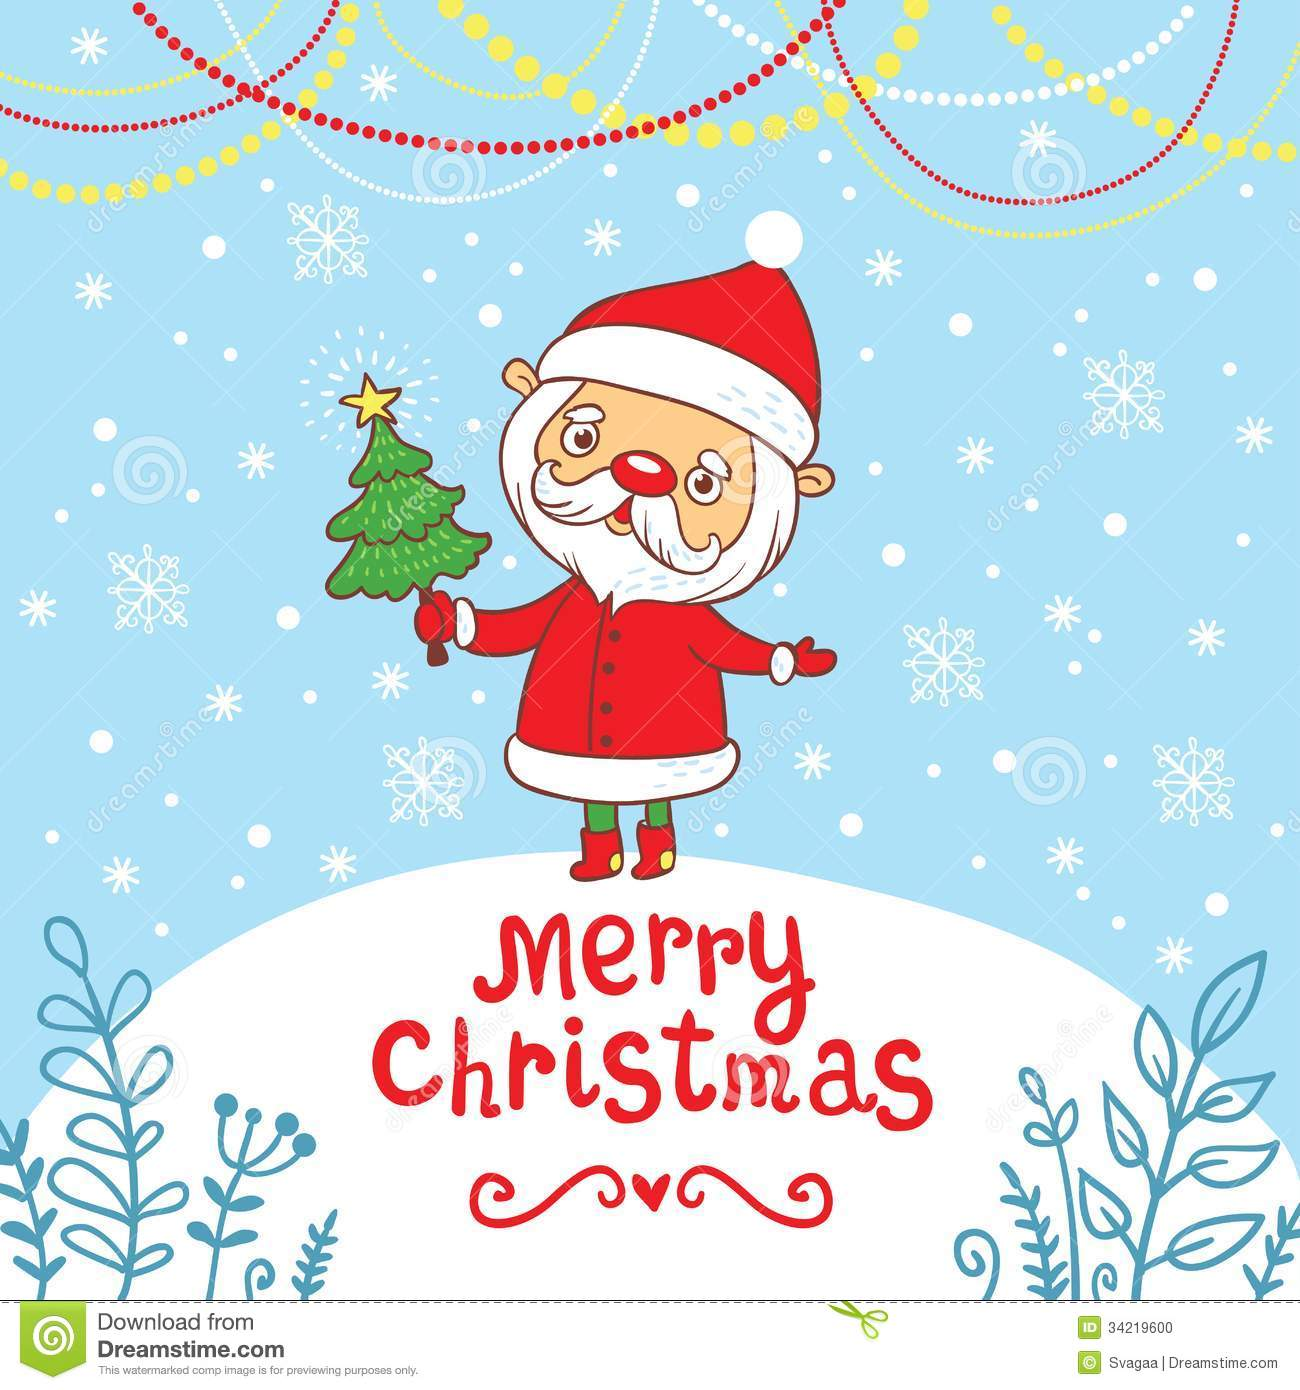 Merry Christmas Greeting Card With Cute Santa Stock Vector